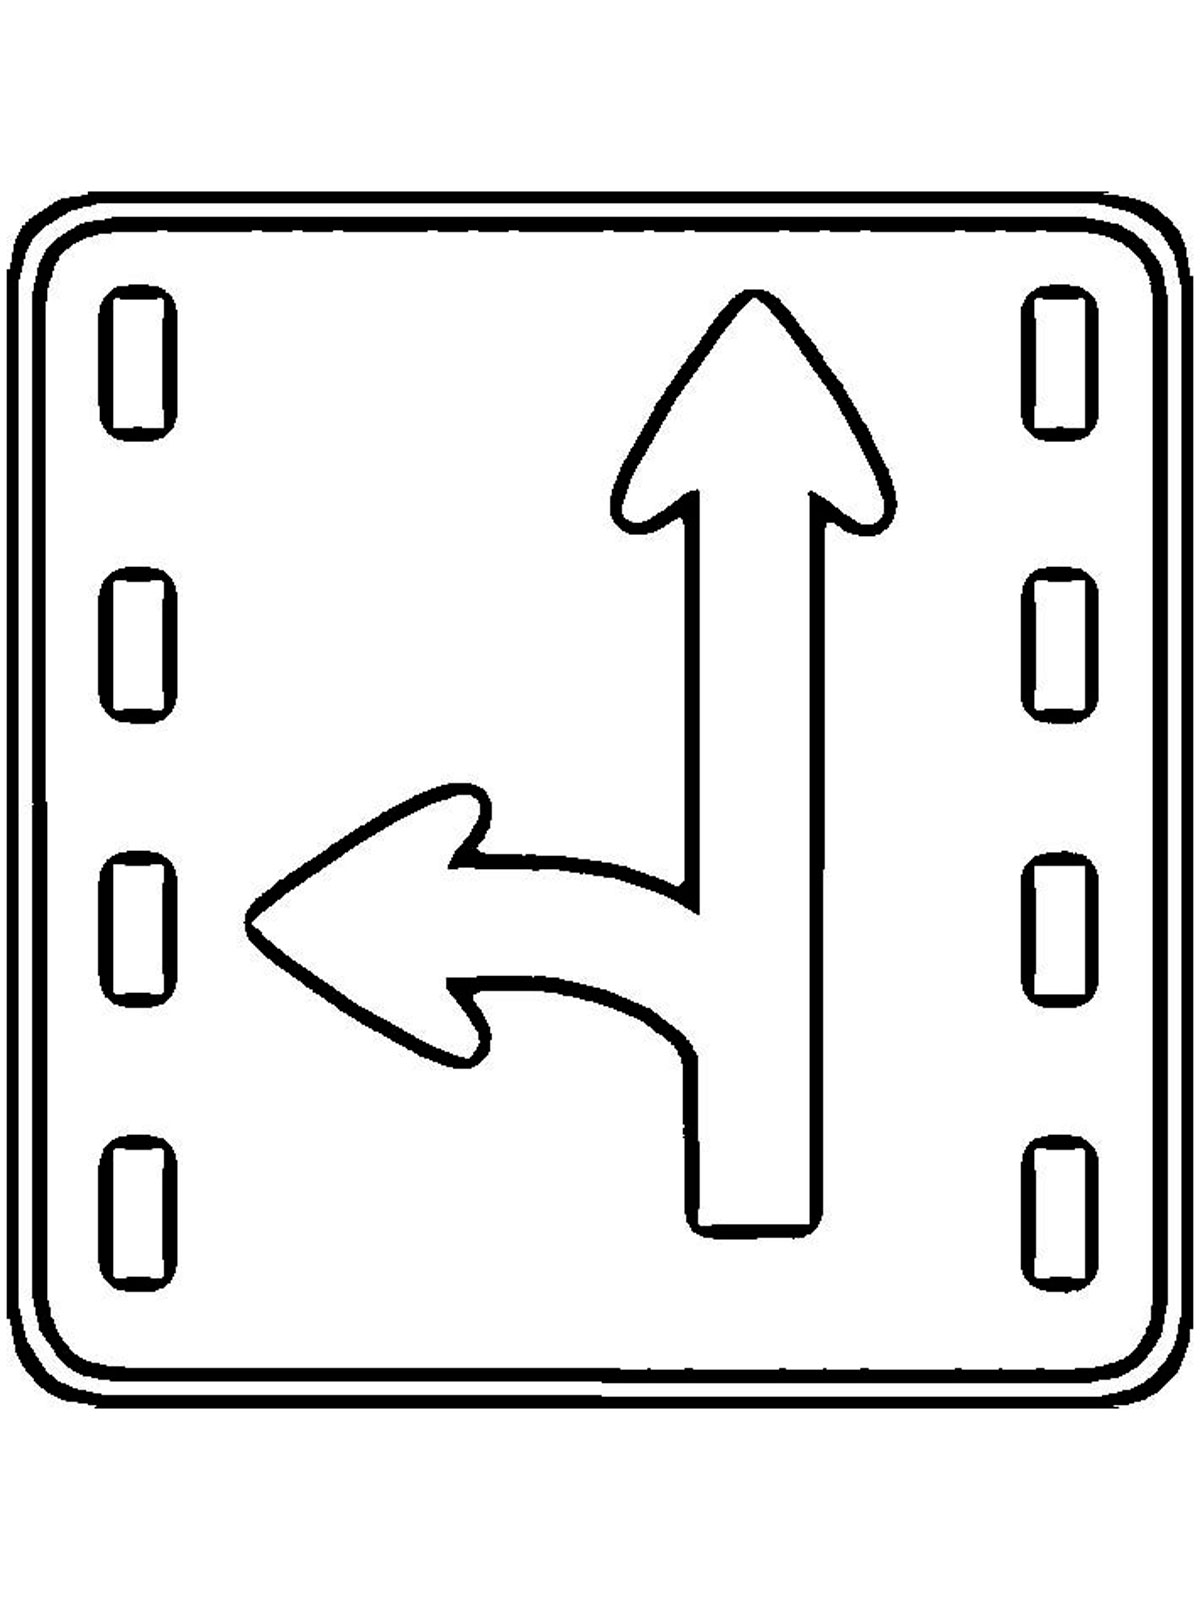 printable traffic signs coloring pages traffic signs coloring pages coloring pages coloring printable signs coloring traffic pages